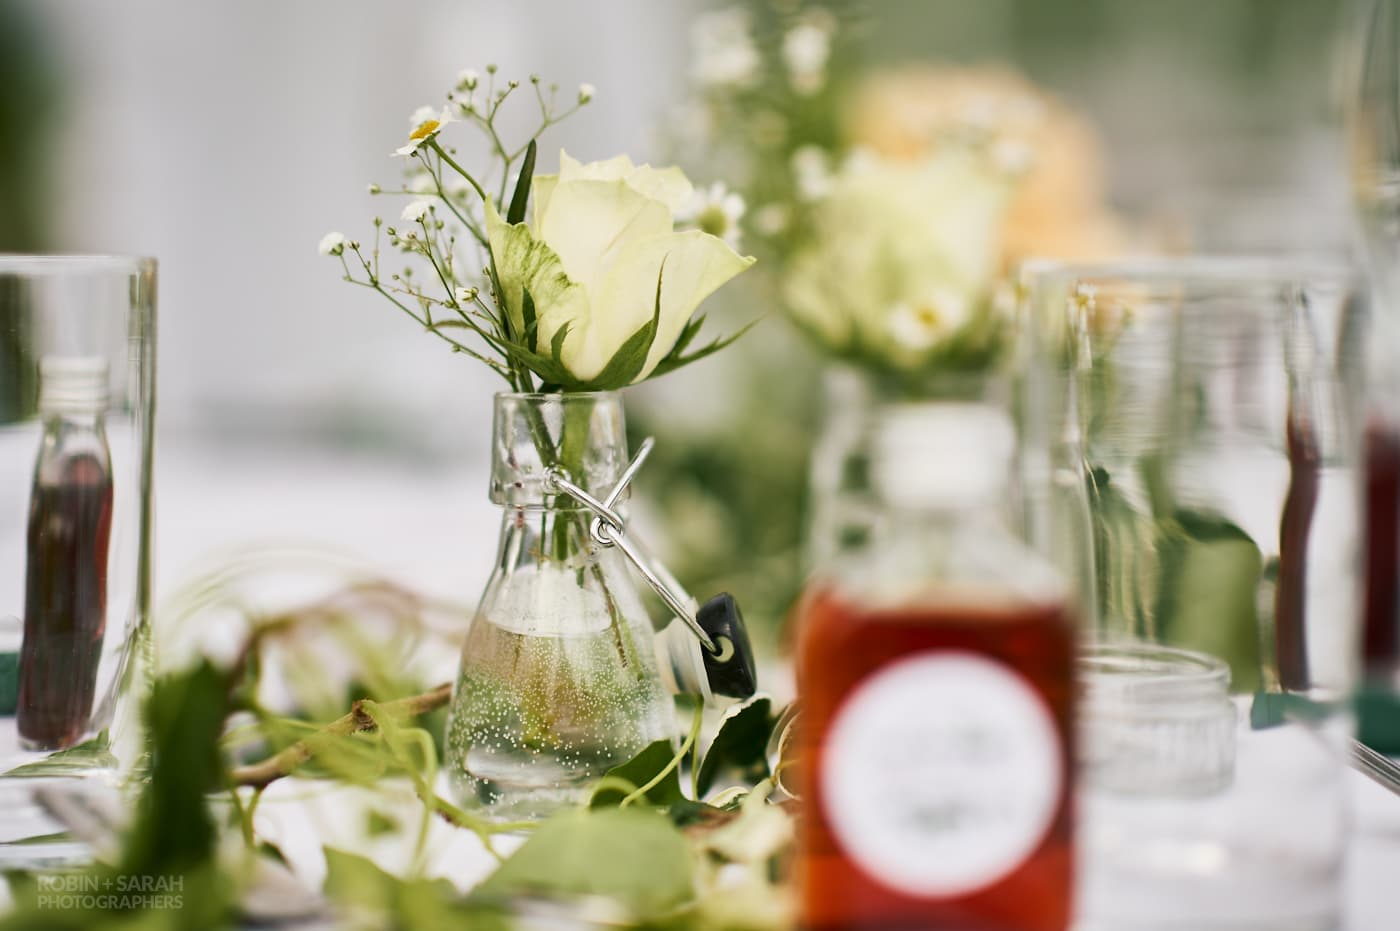 Yellow flower in small glass jar